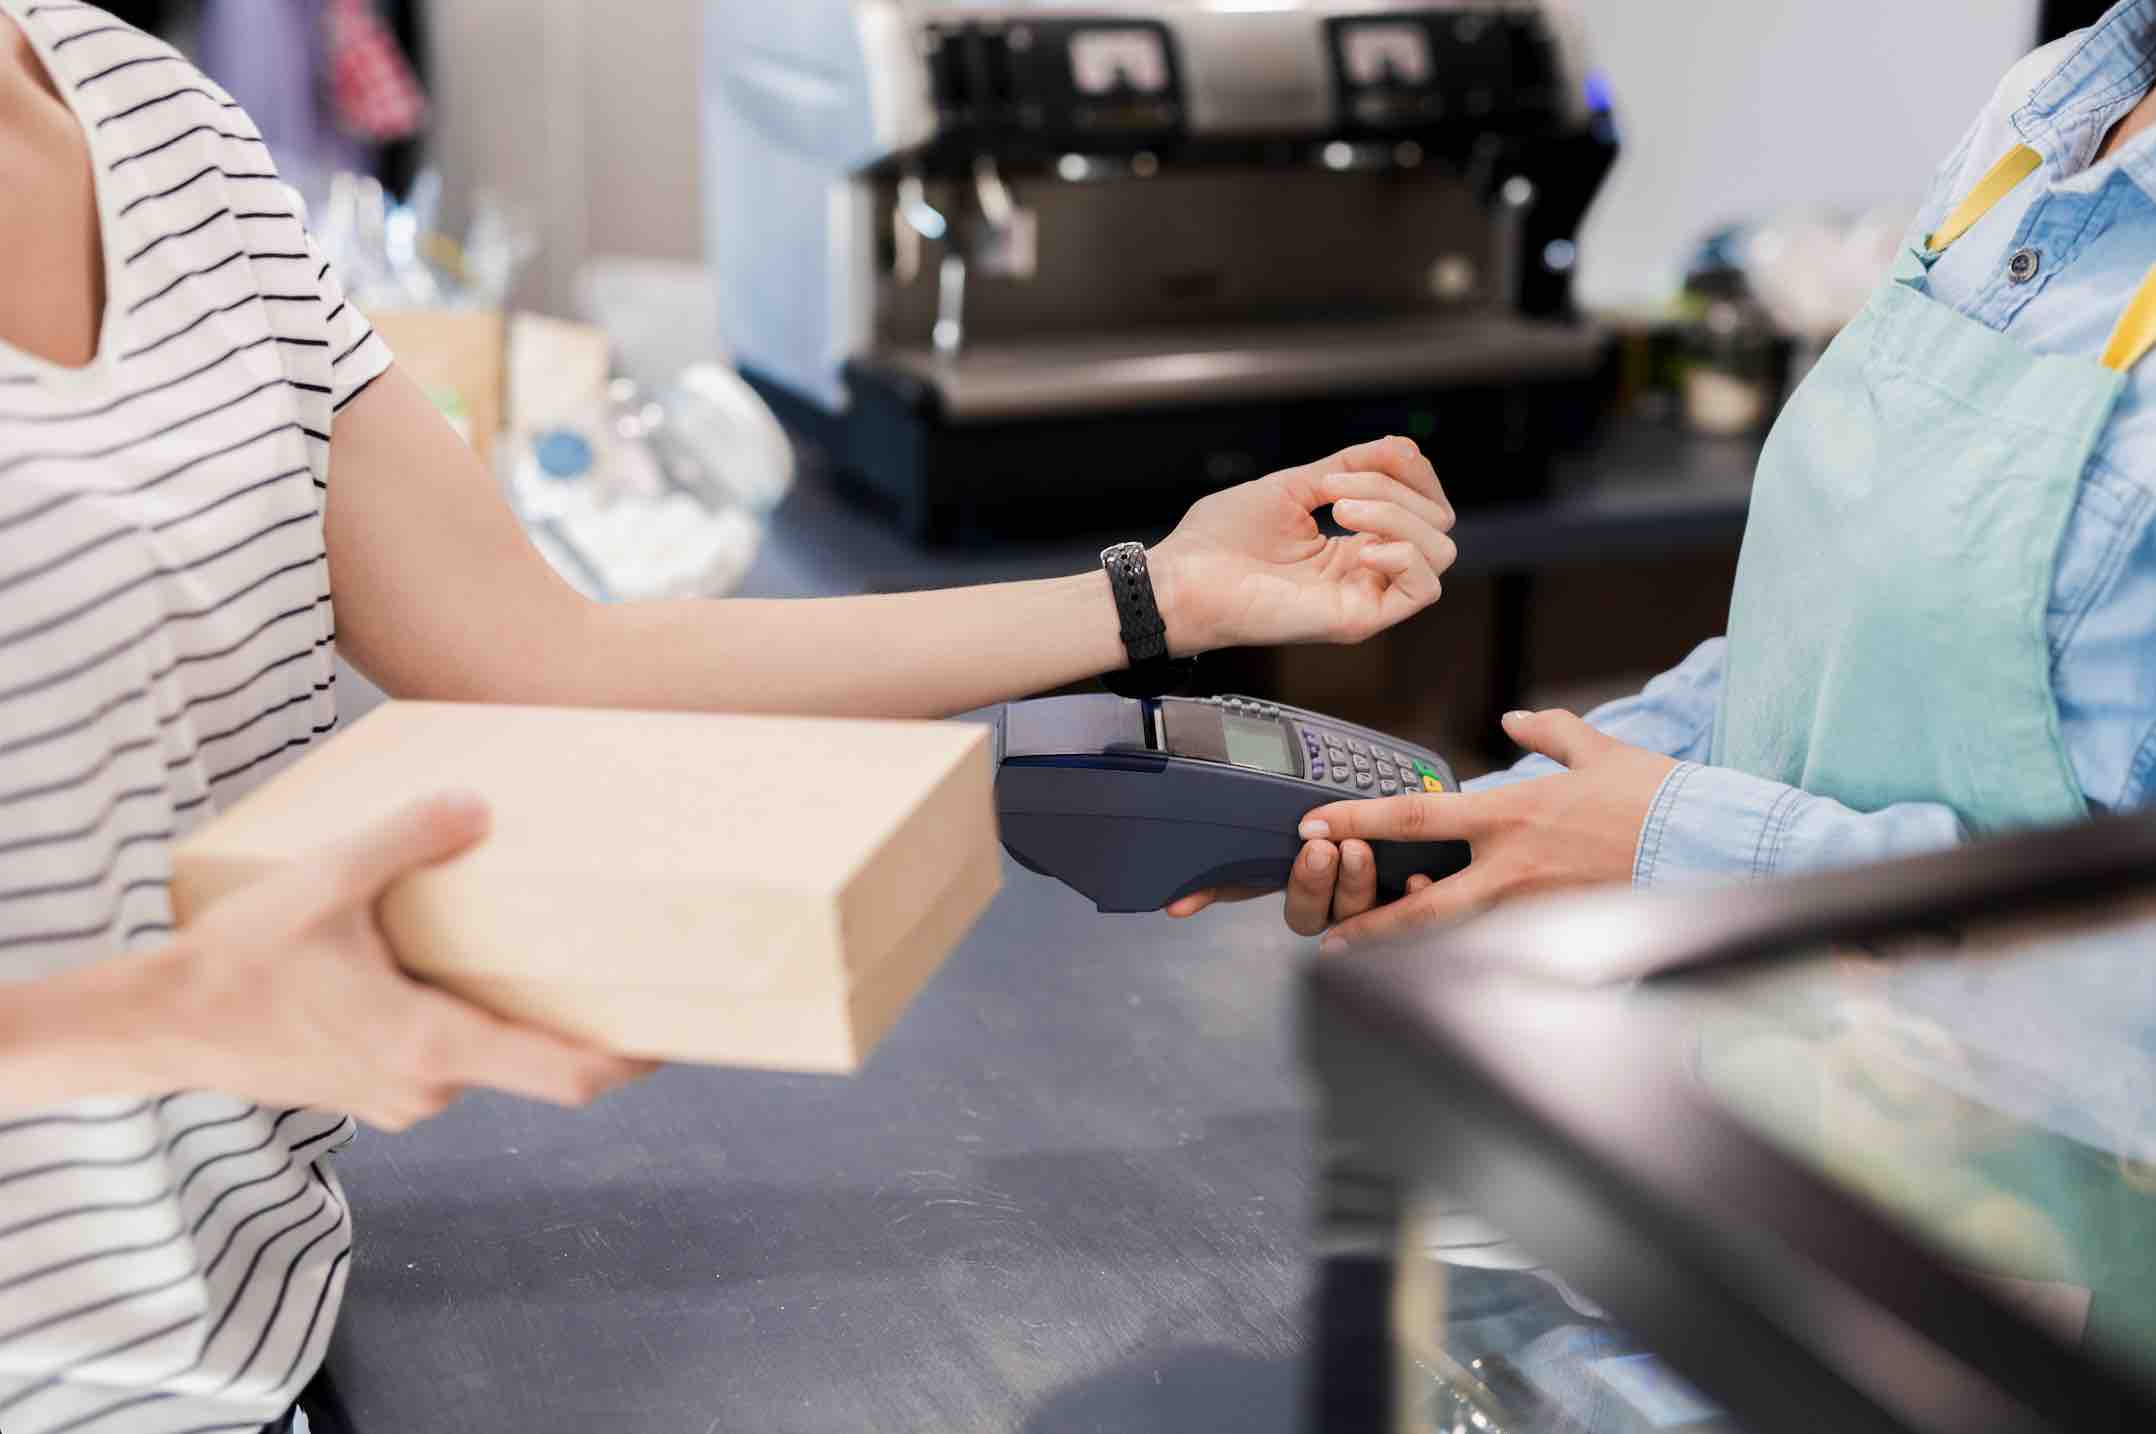 Smartwatch mobile payment